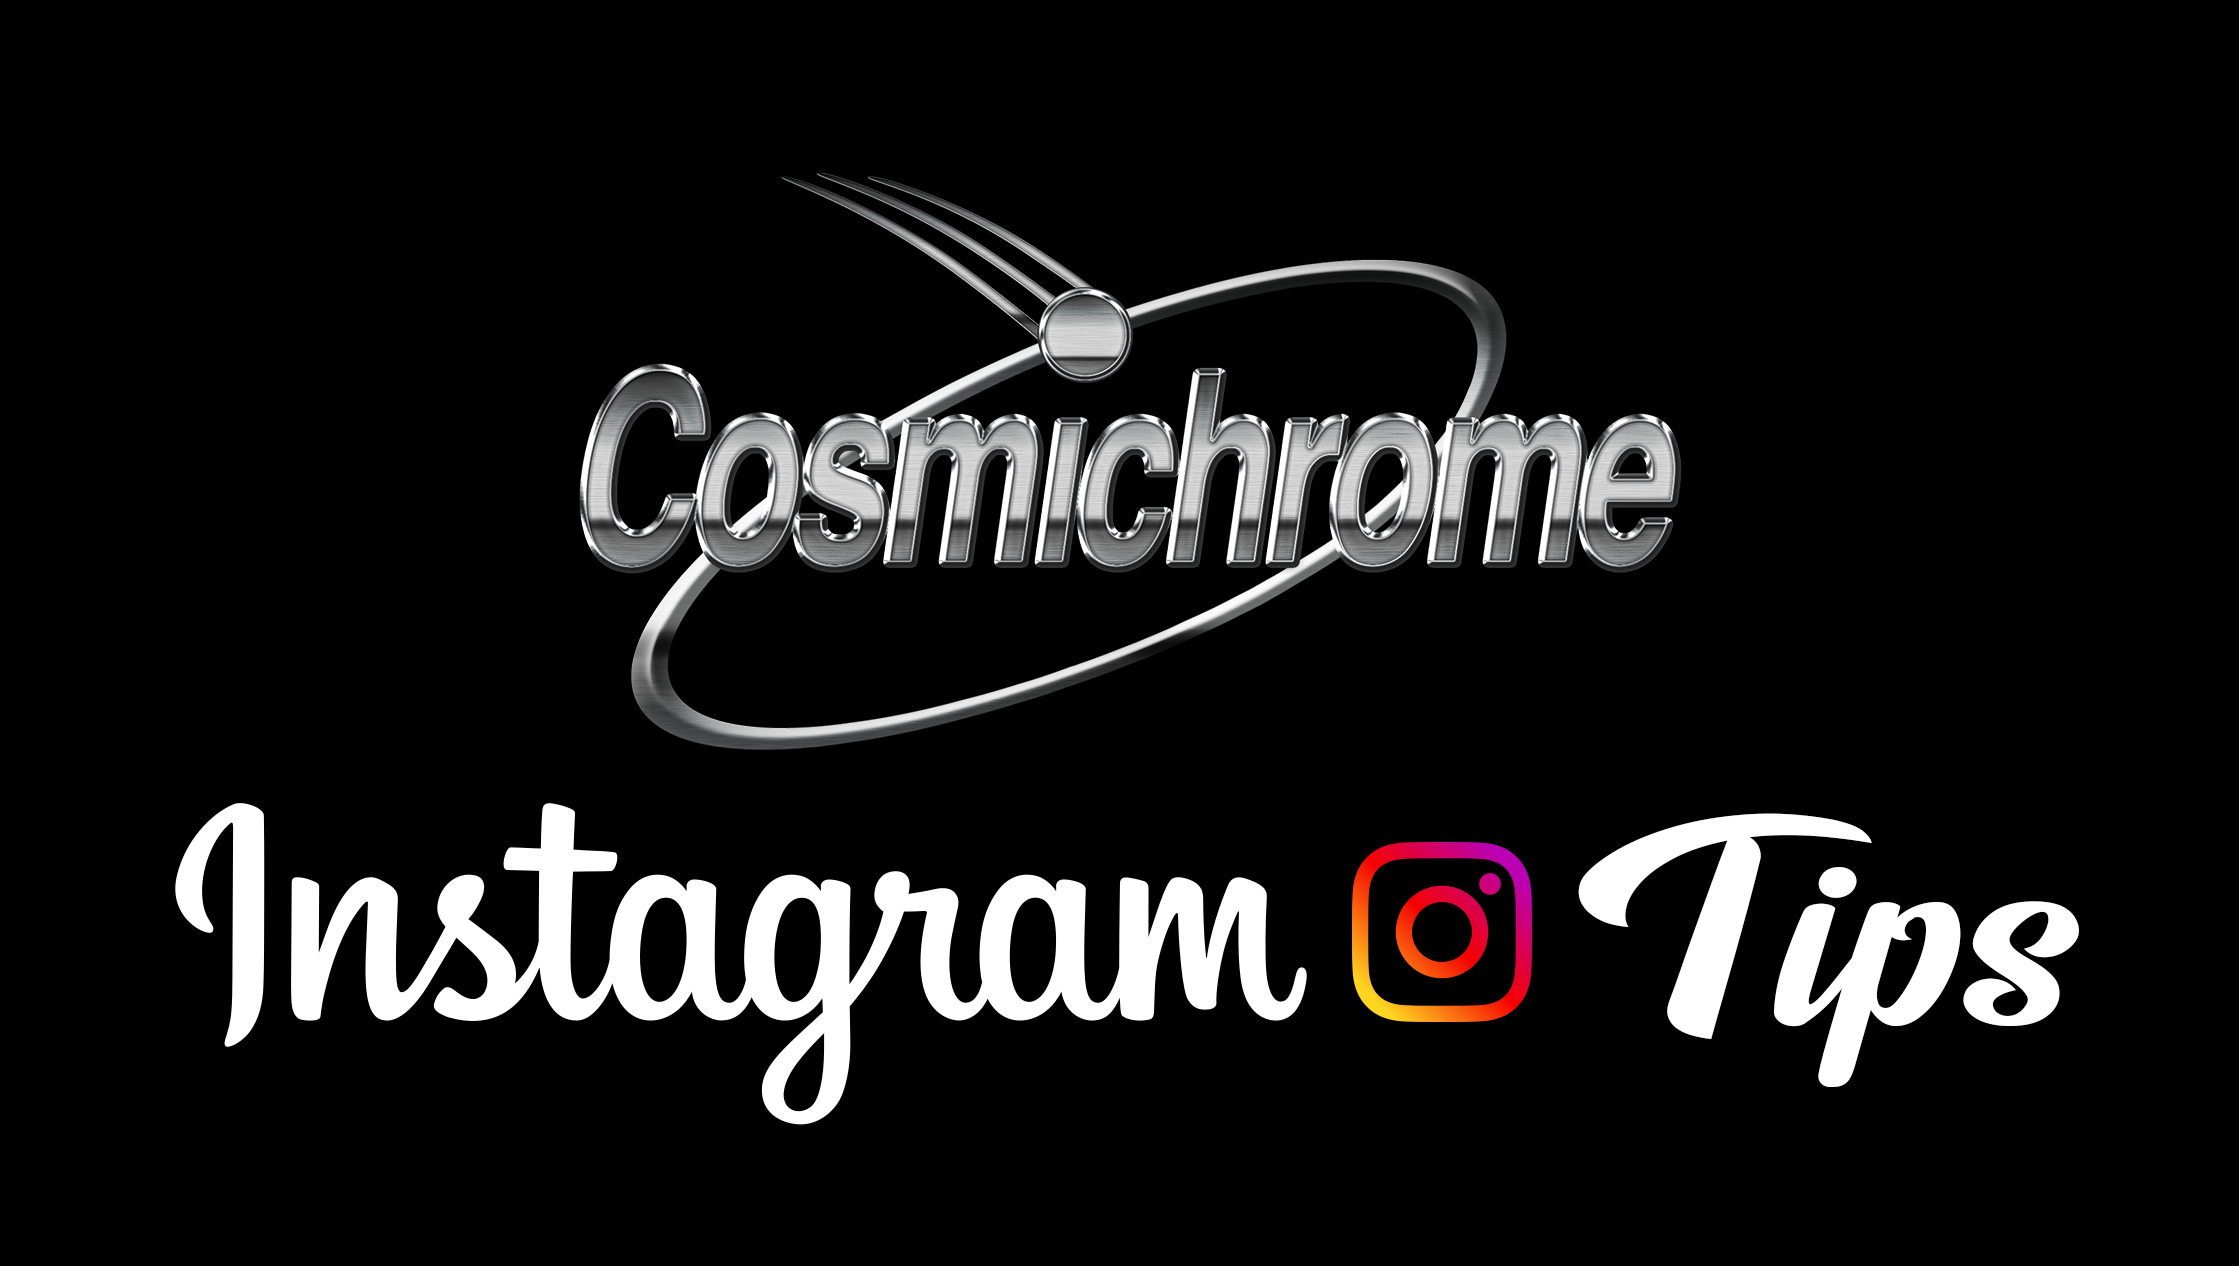 Cosmichrome Instagram Tips